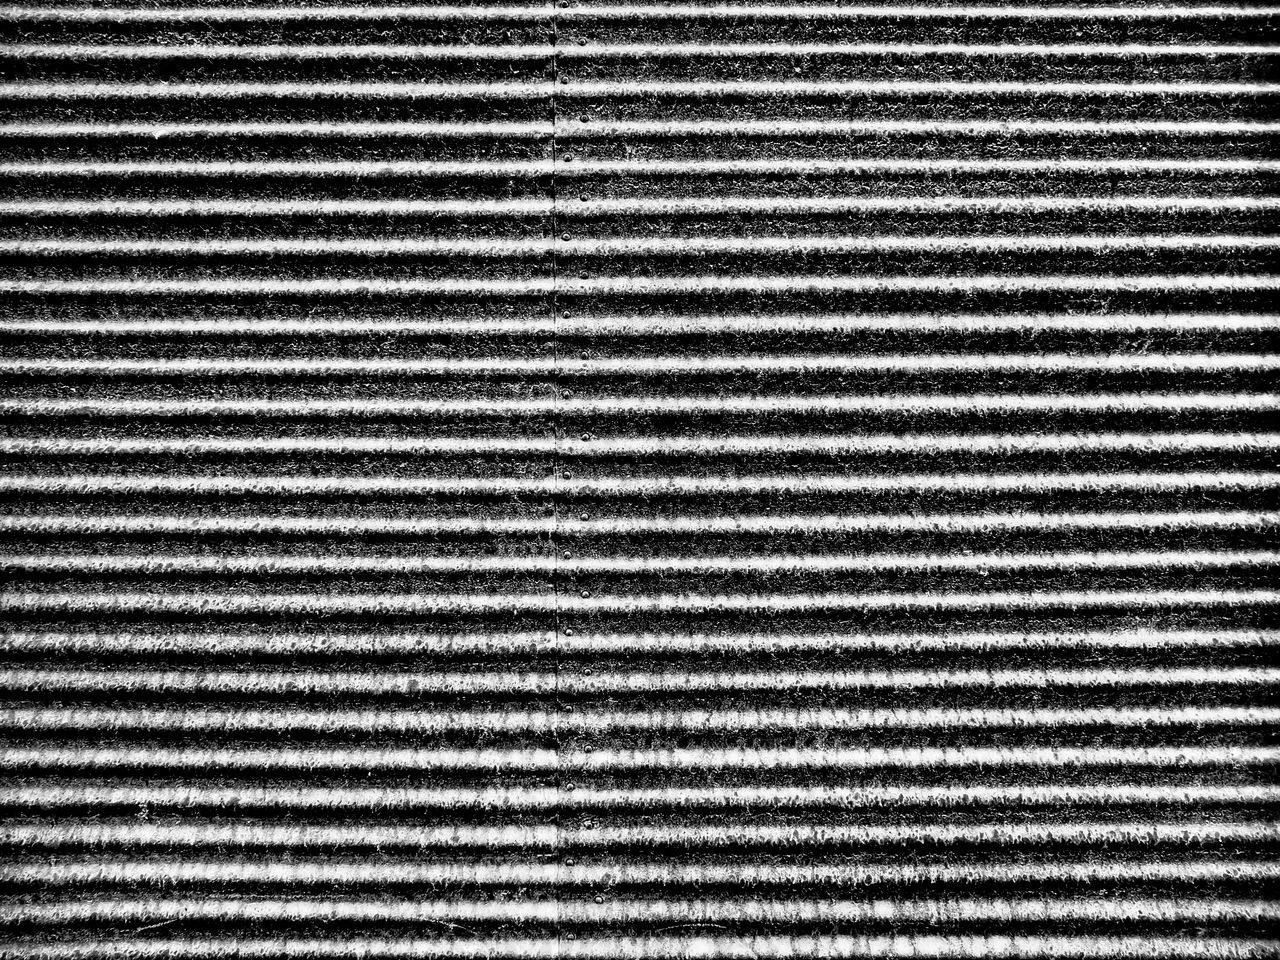 striped, pattern, backgrounds, black color, textured, steel, retro styled, abstract, no people, close-up, full frame, outdoors, day